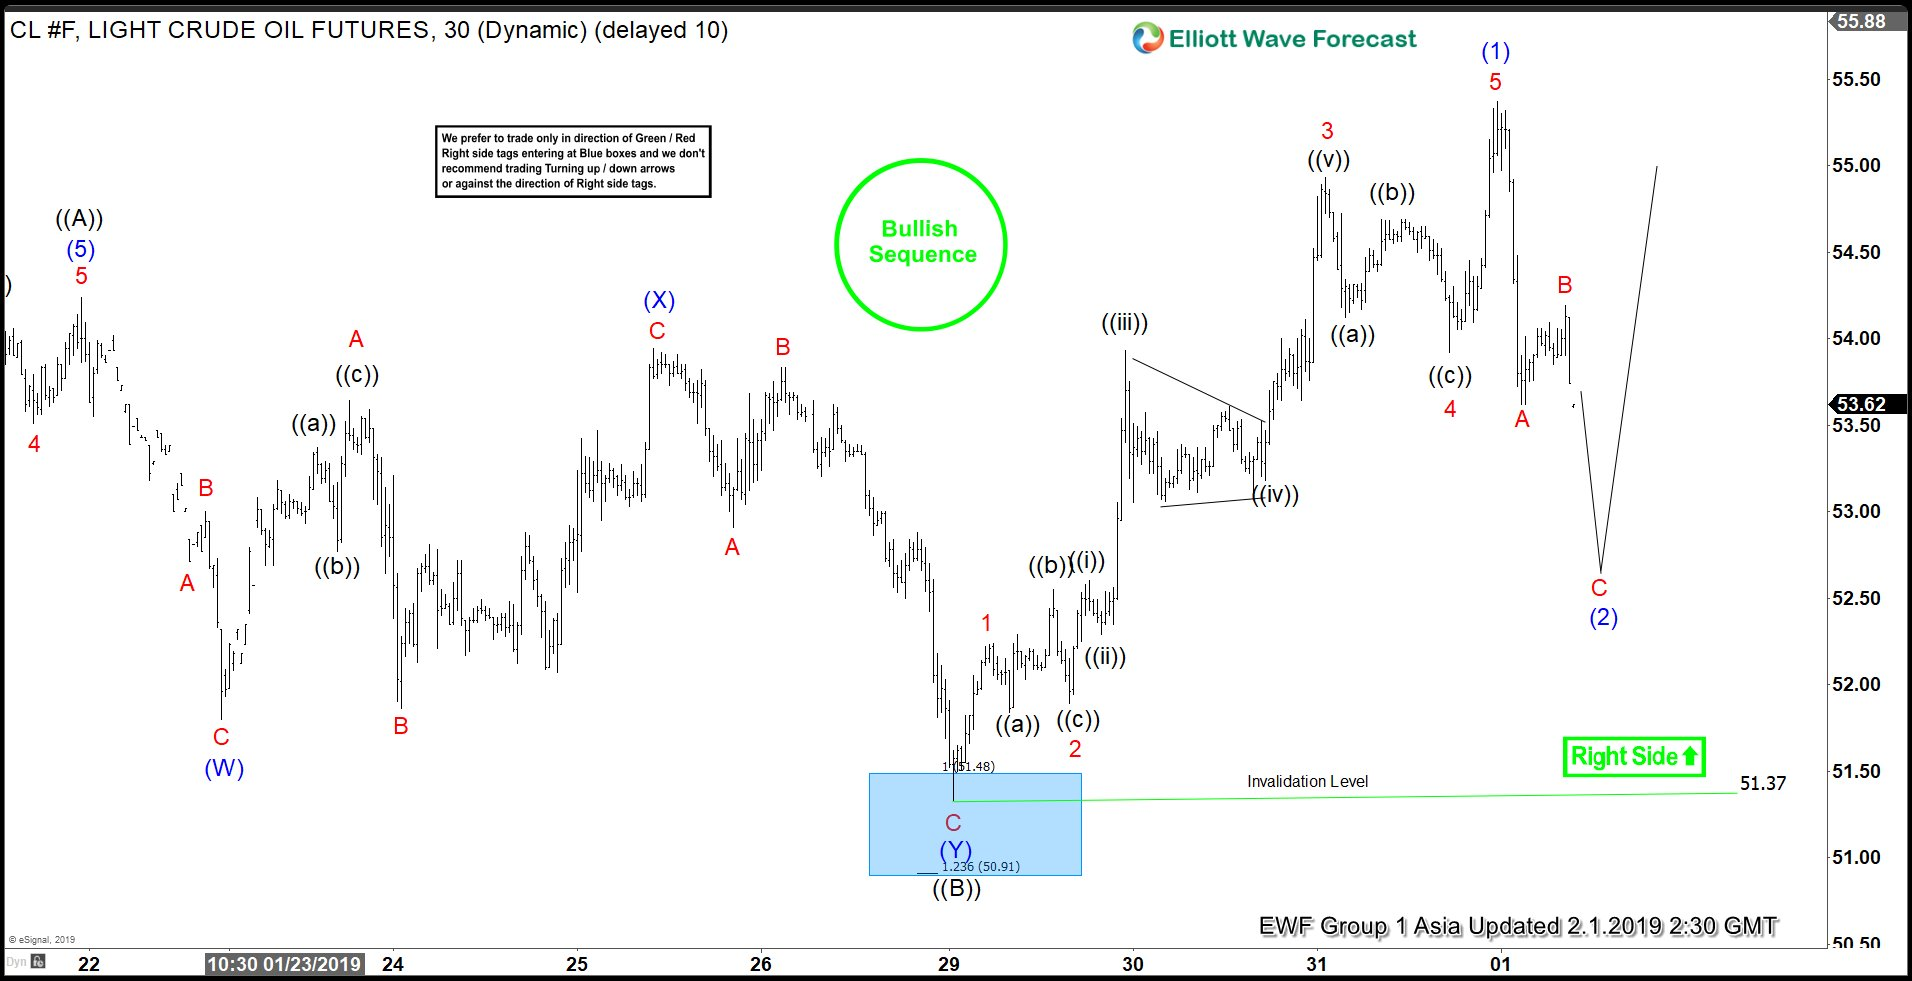 Elliott Wave Expects Limited Pullback in Oil